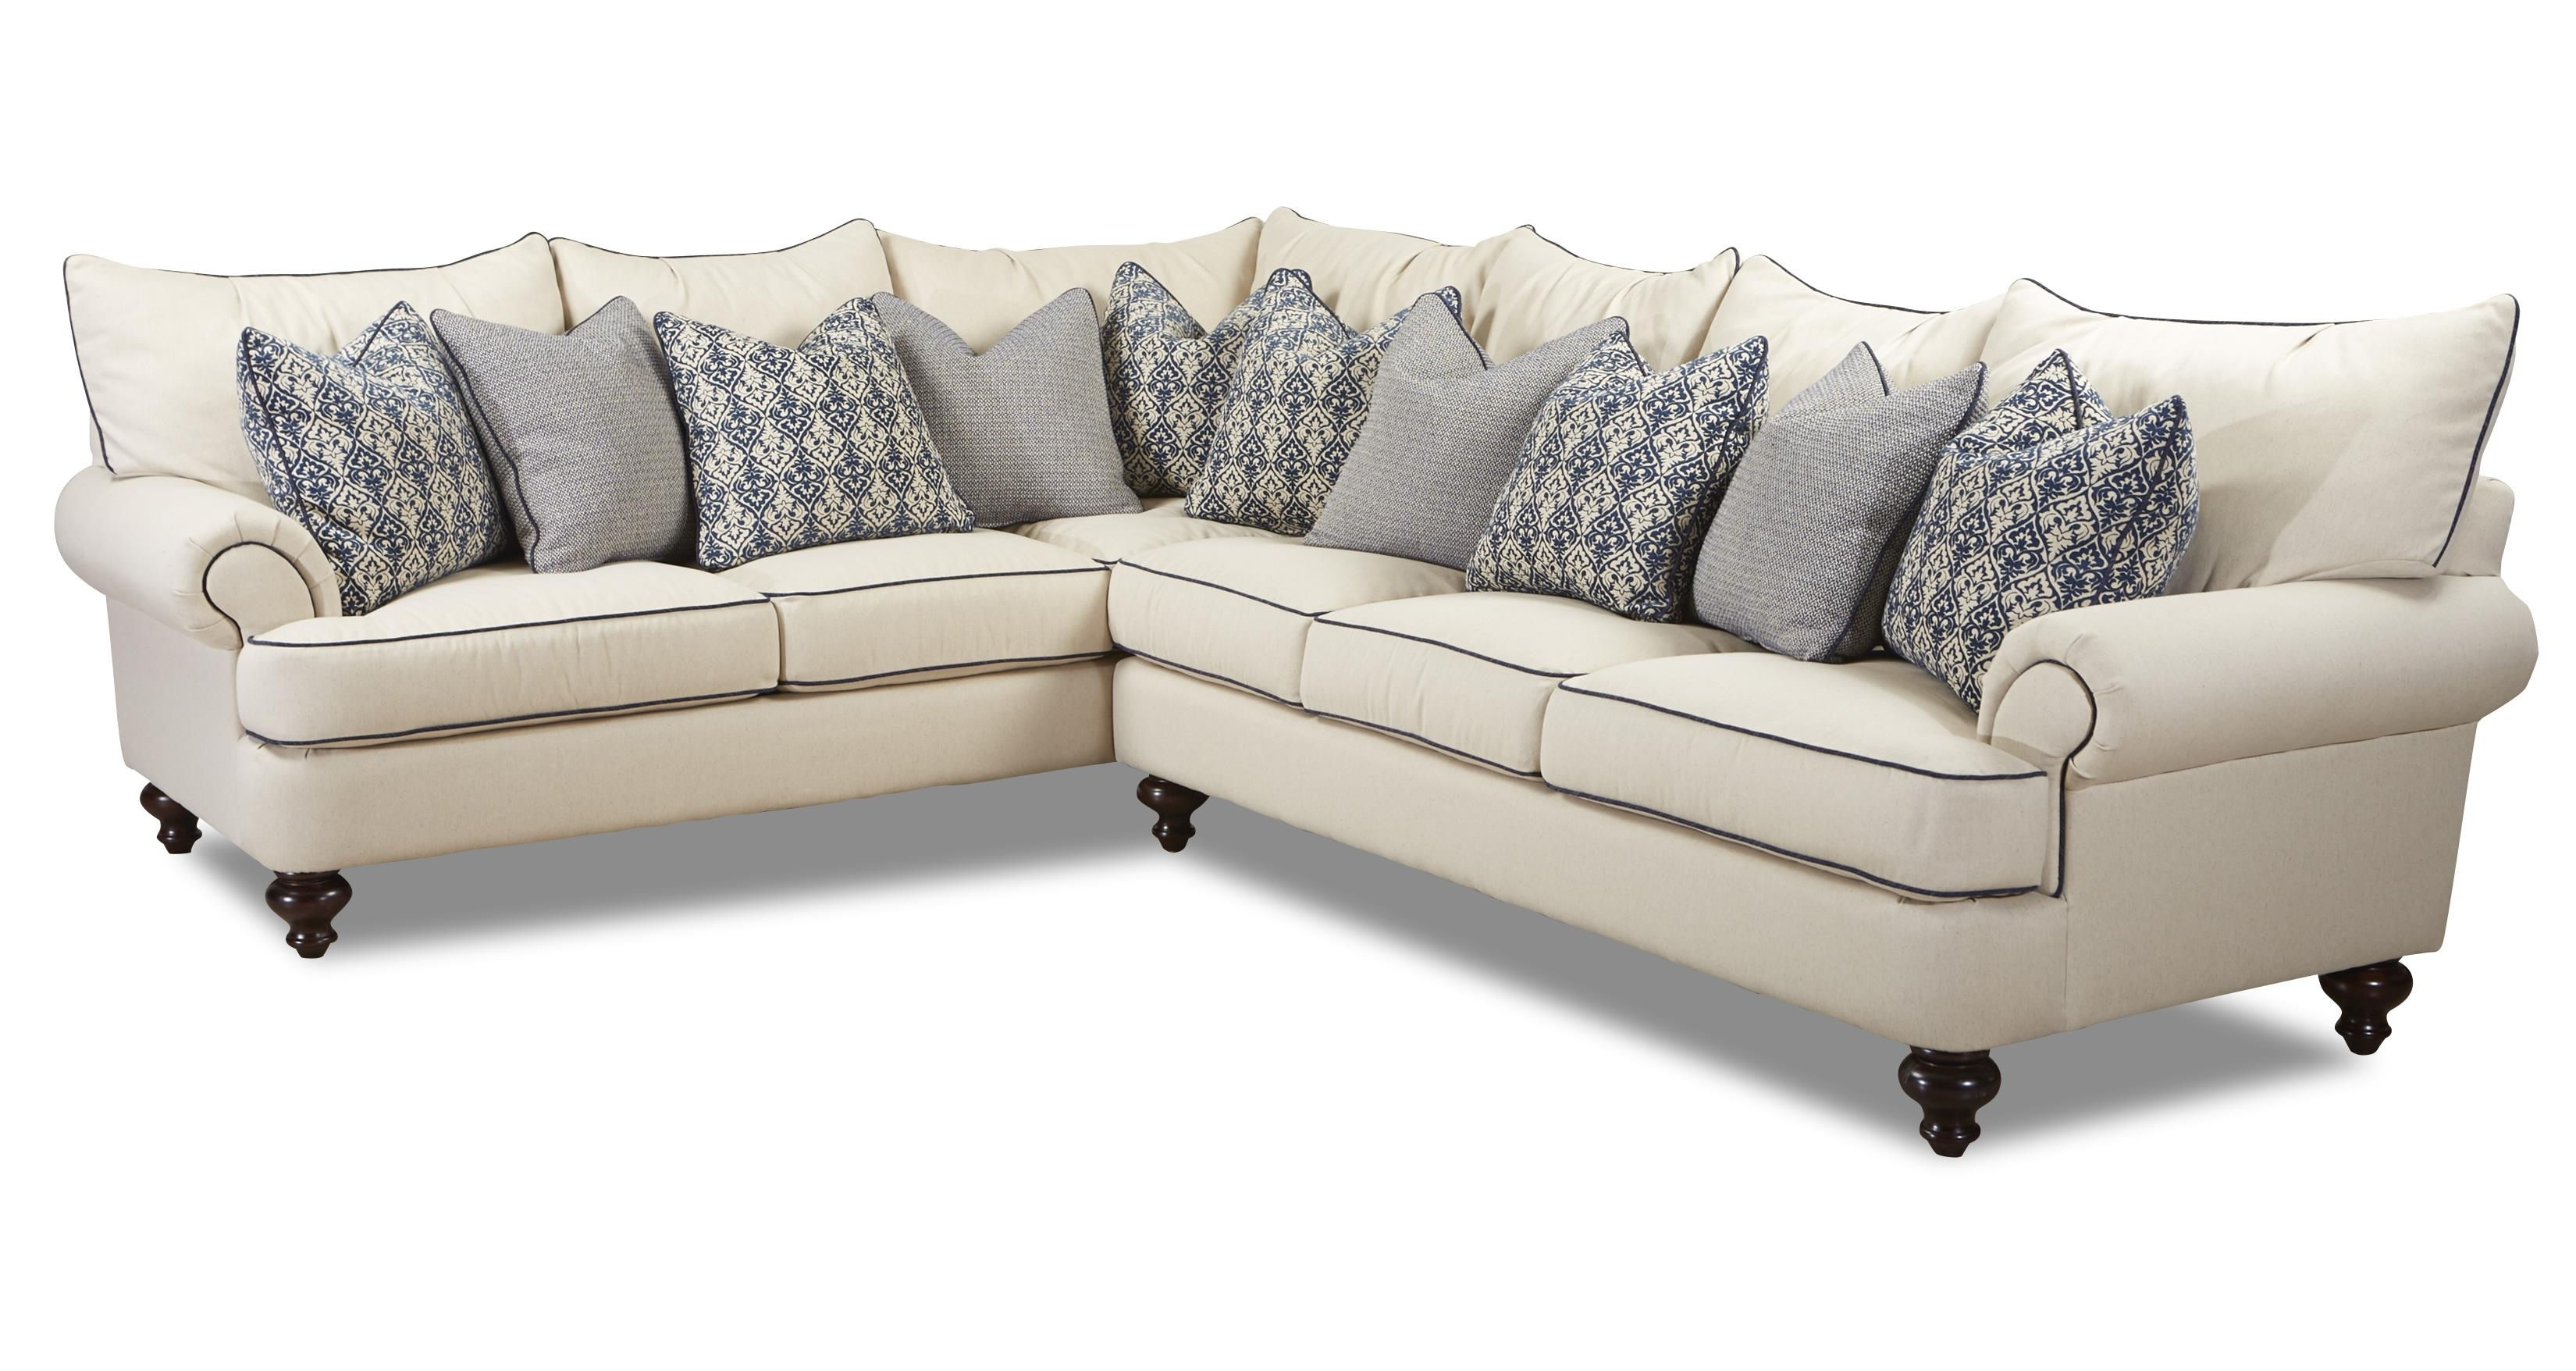 10 Ideas Of Gardiners Sectional Sofas Sofa Ideas